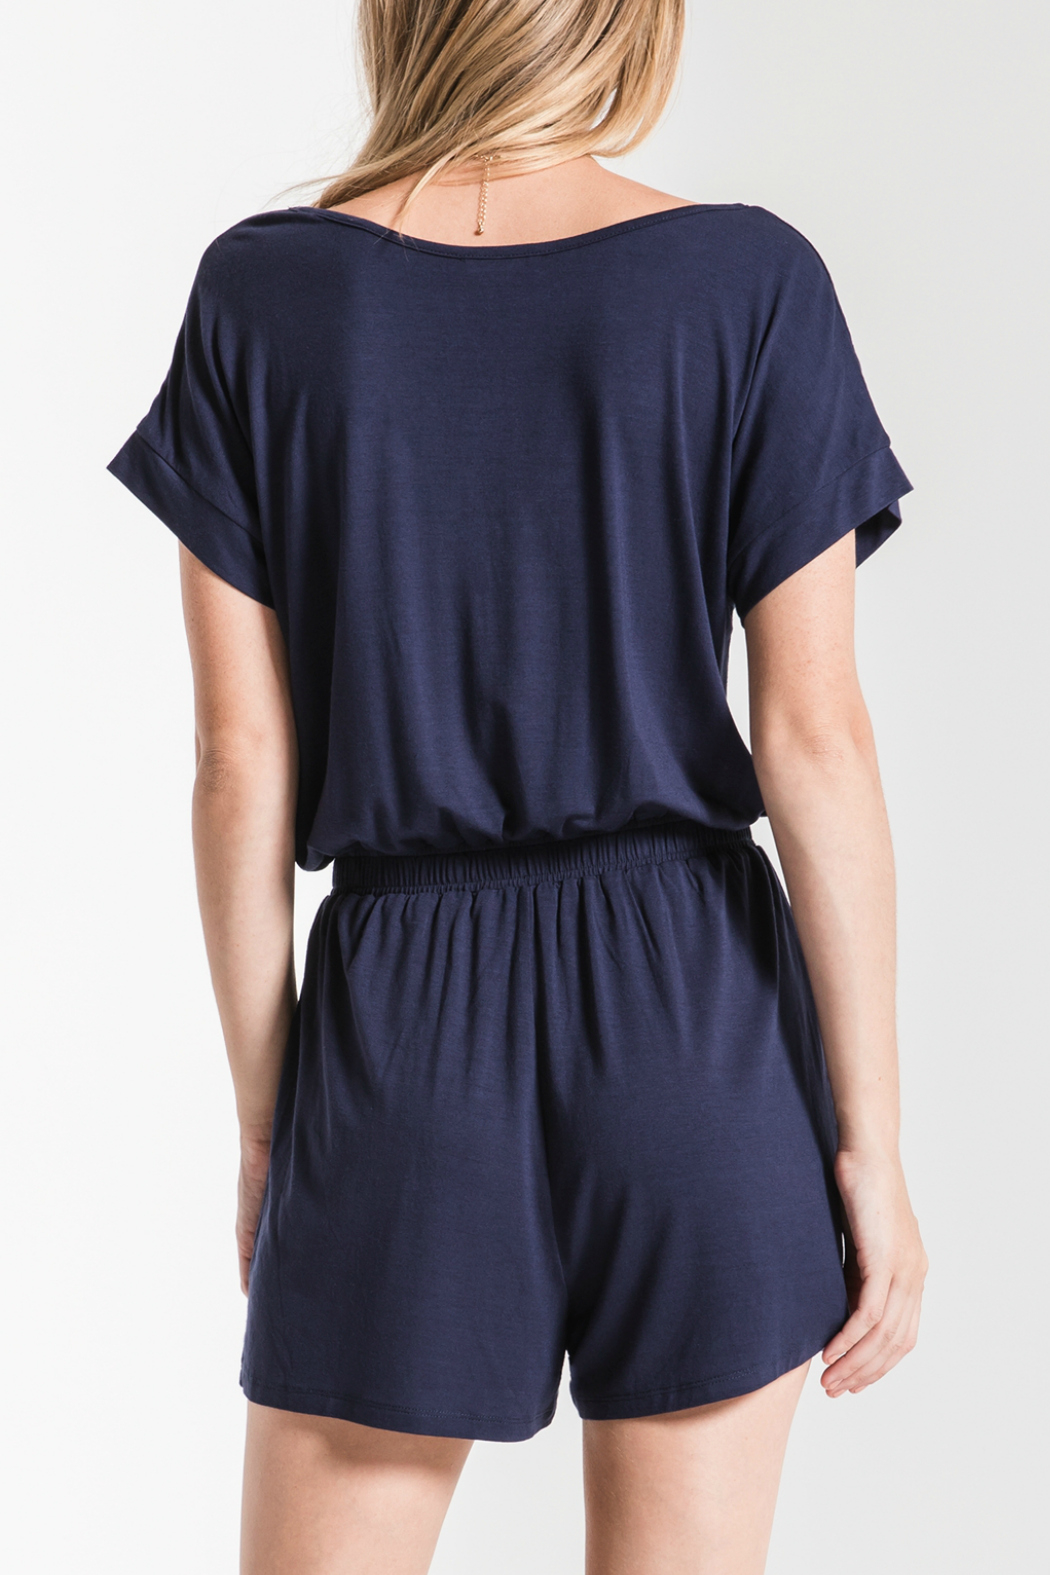 z supply Blaire Sleek Jersey Romper - Side Cropped Image